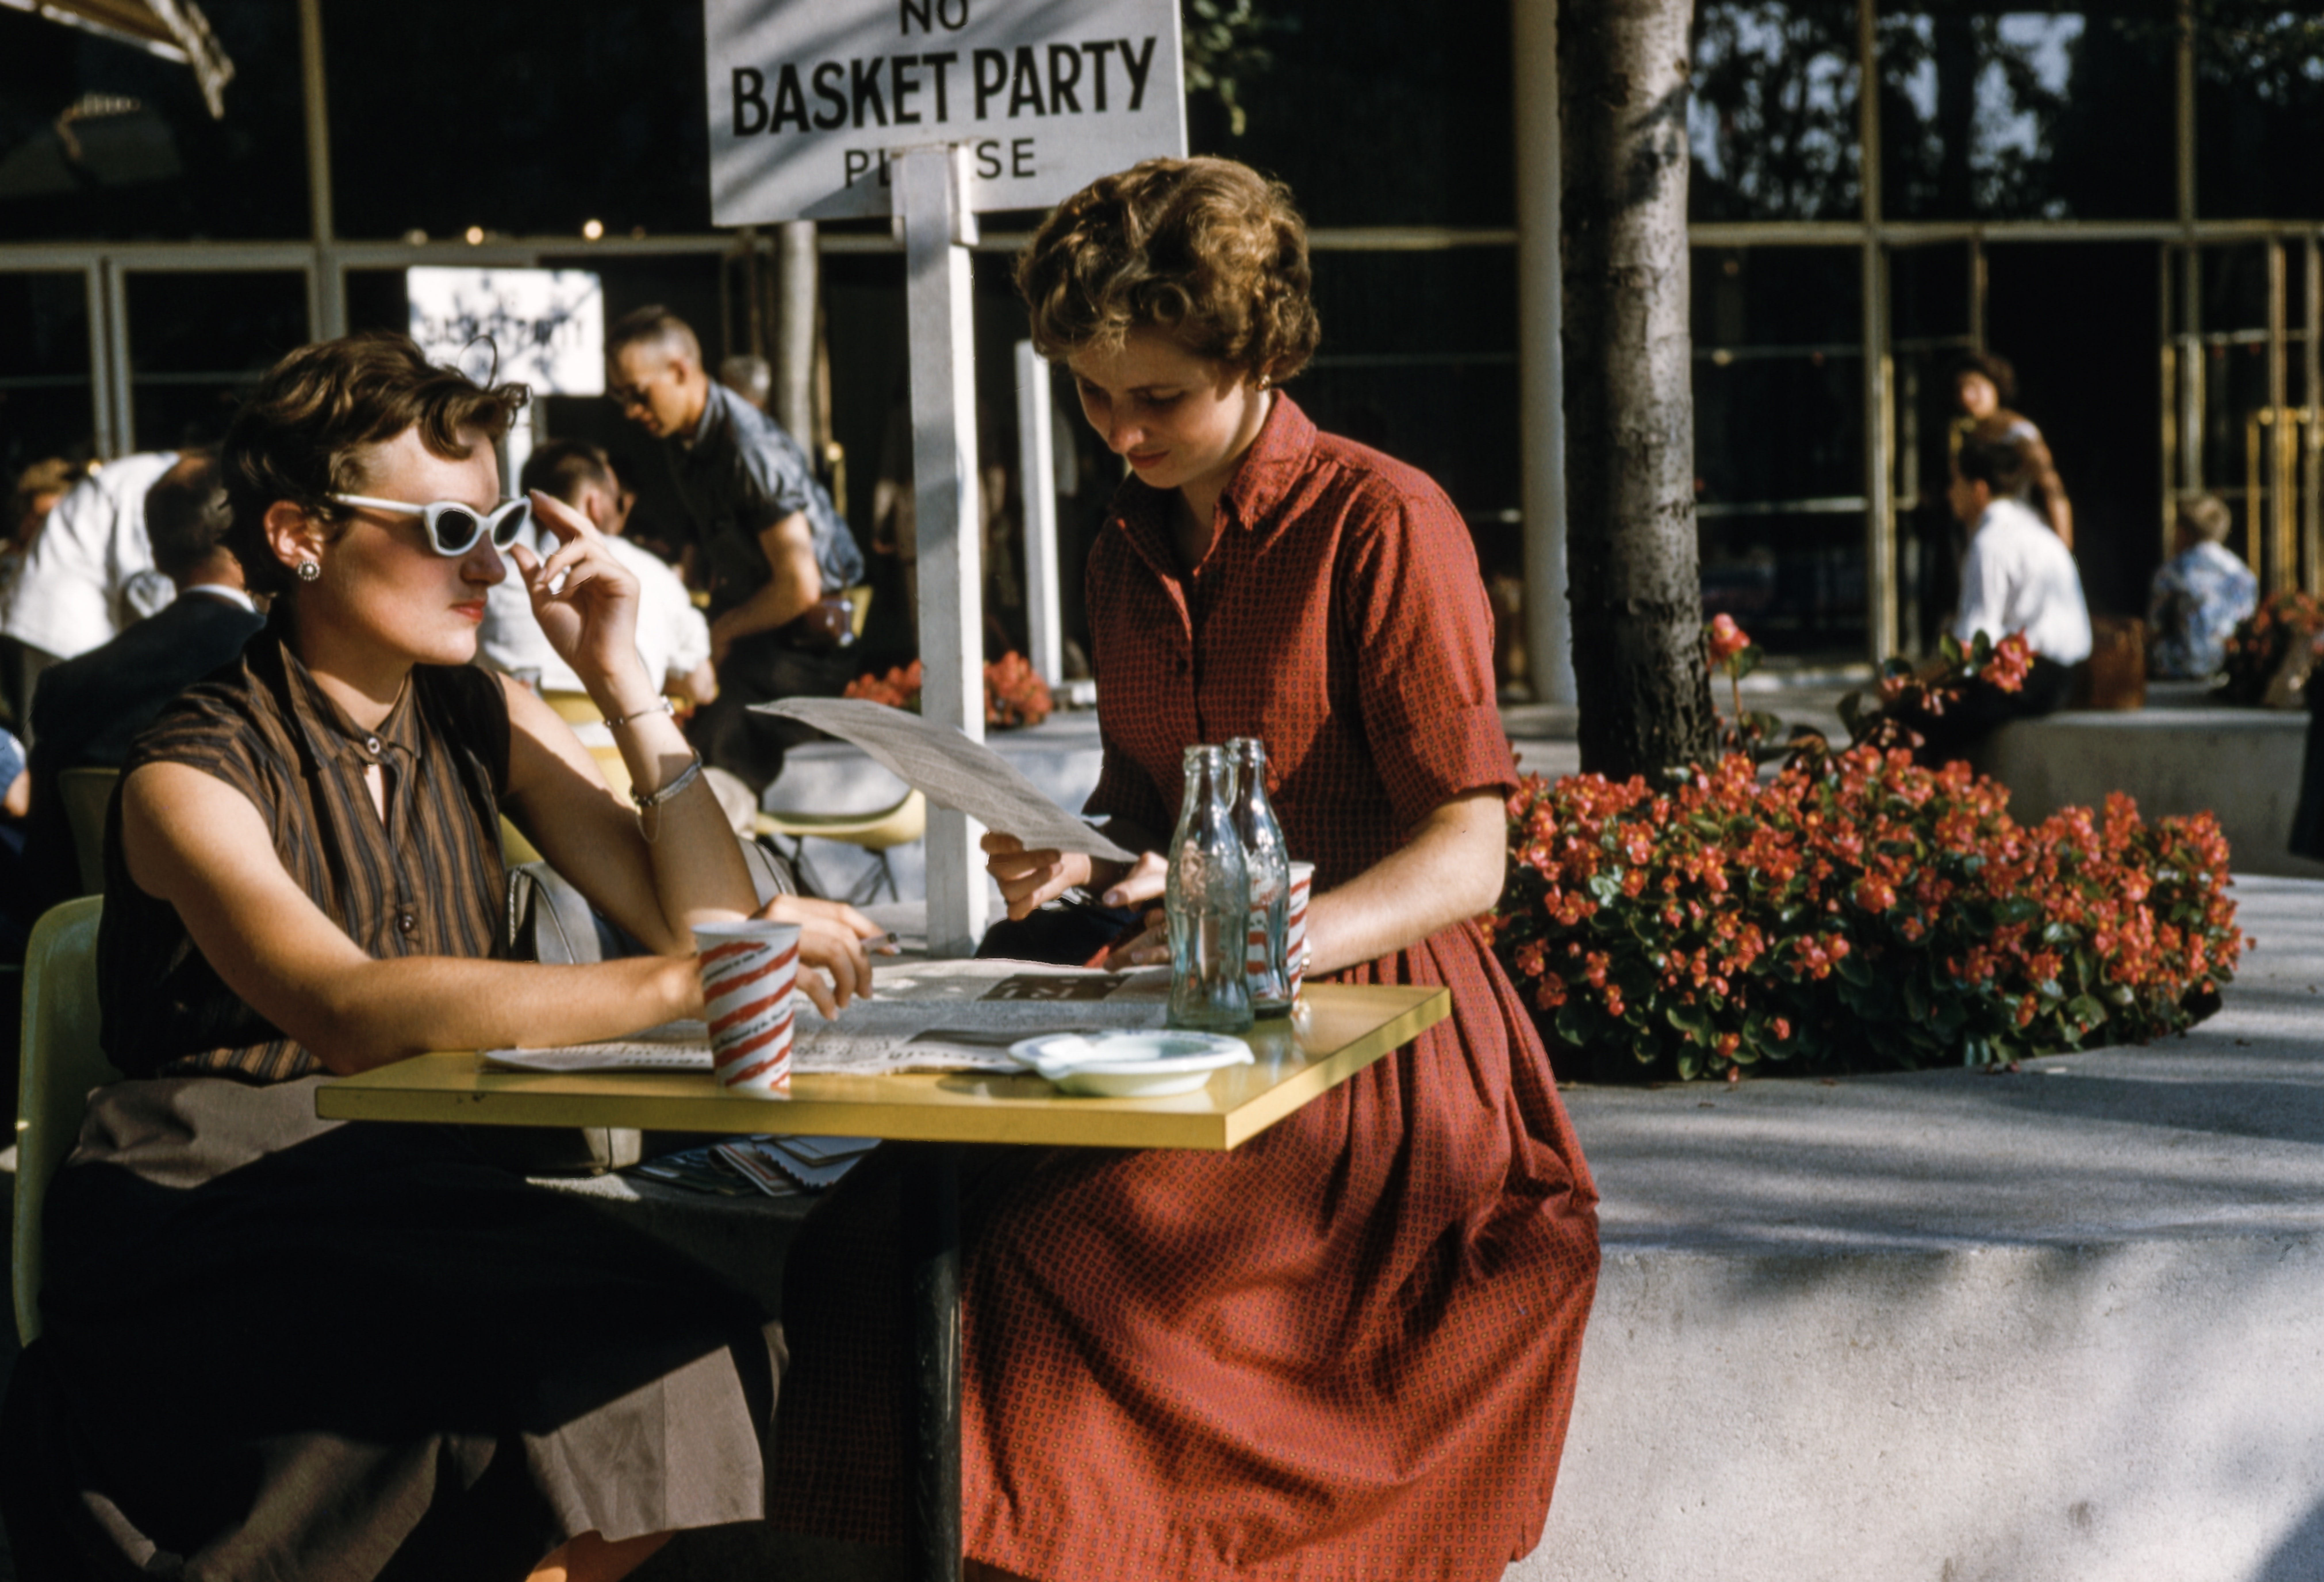 A vintage photograph of two women sitting at a cafe table.